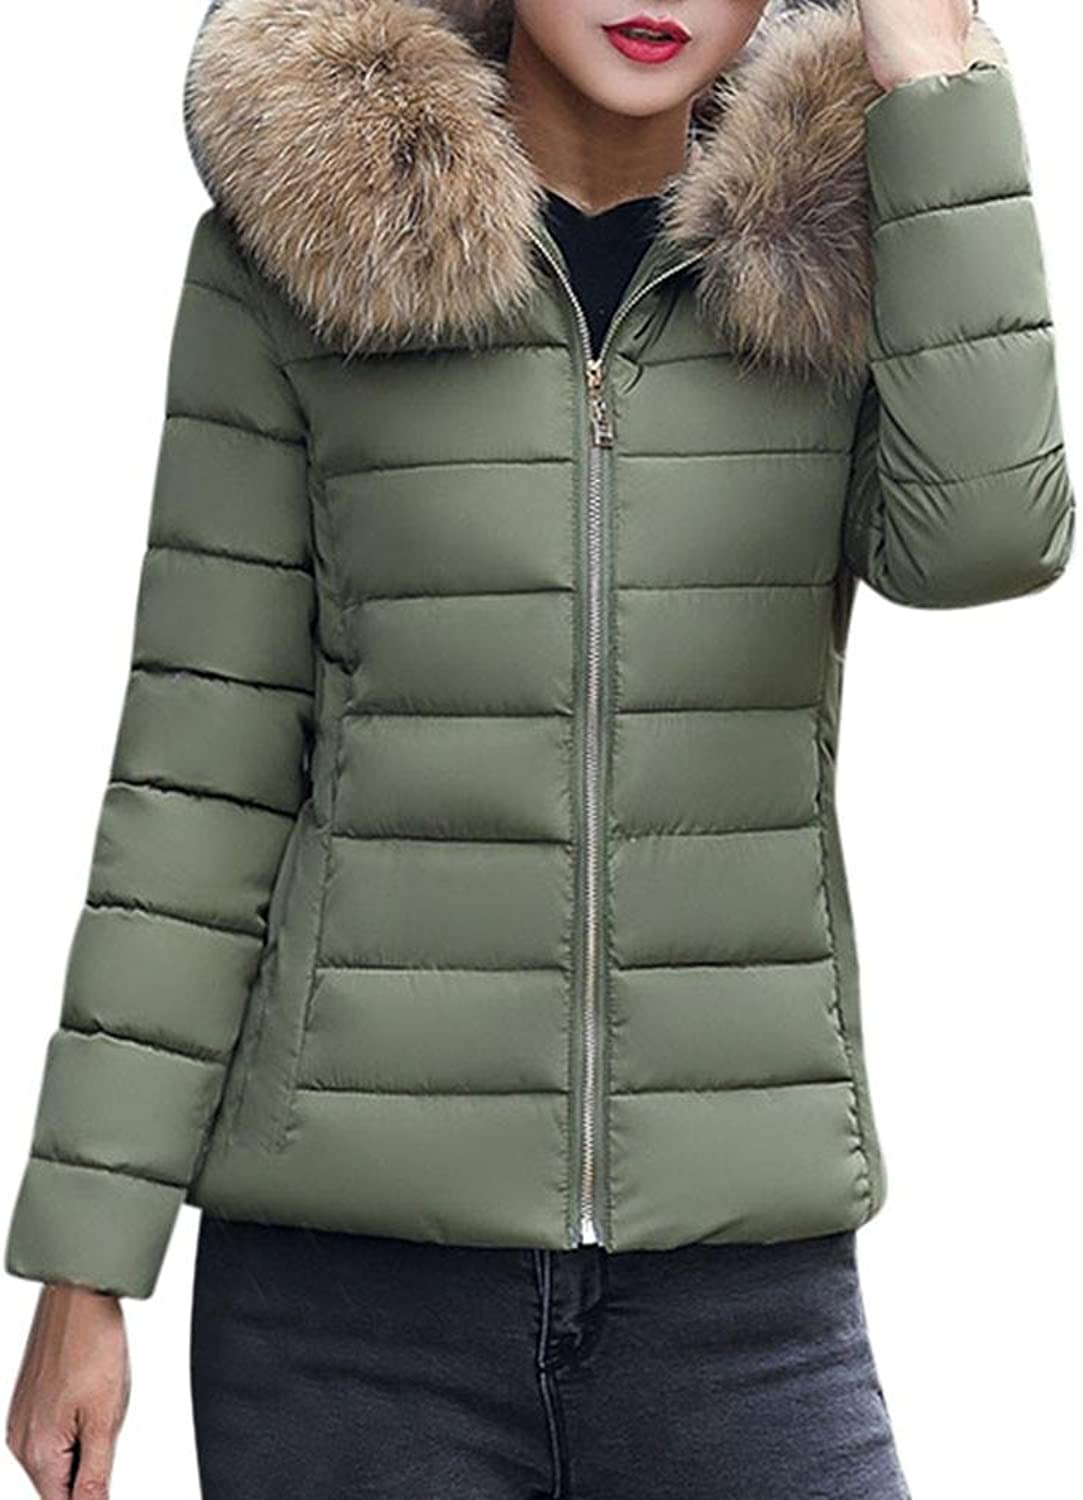 ManxiVoo Women's Thickened Warm Jackets, Fashion Solid Casual Winter Slim Coat Short Thicker Overcoat